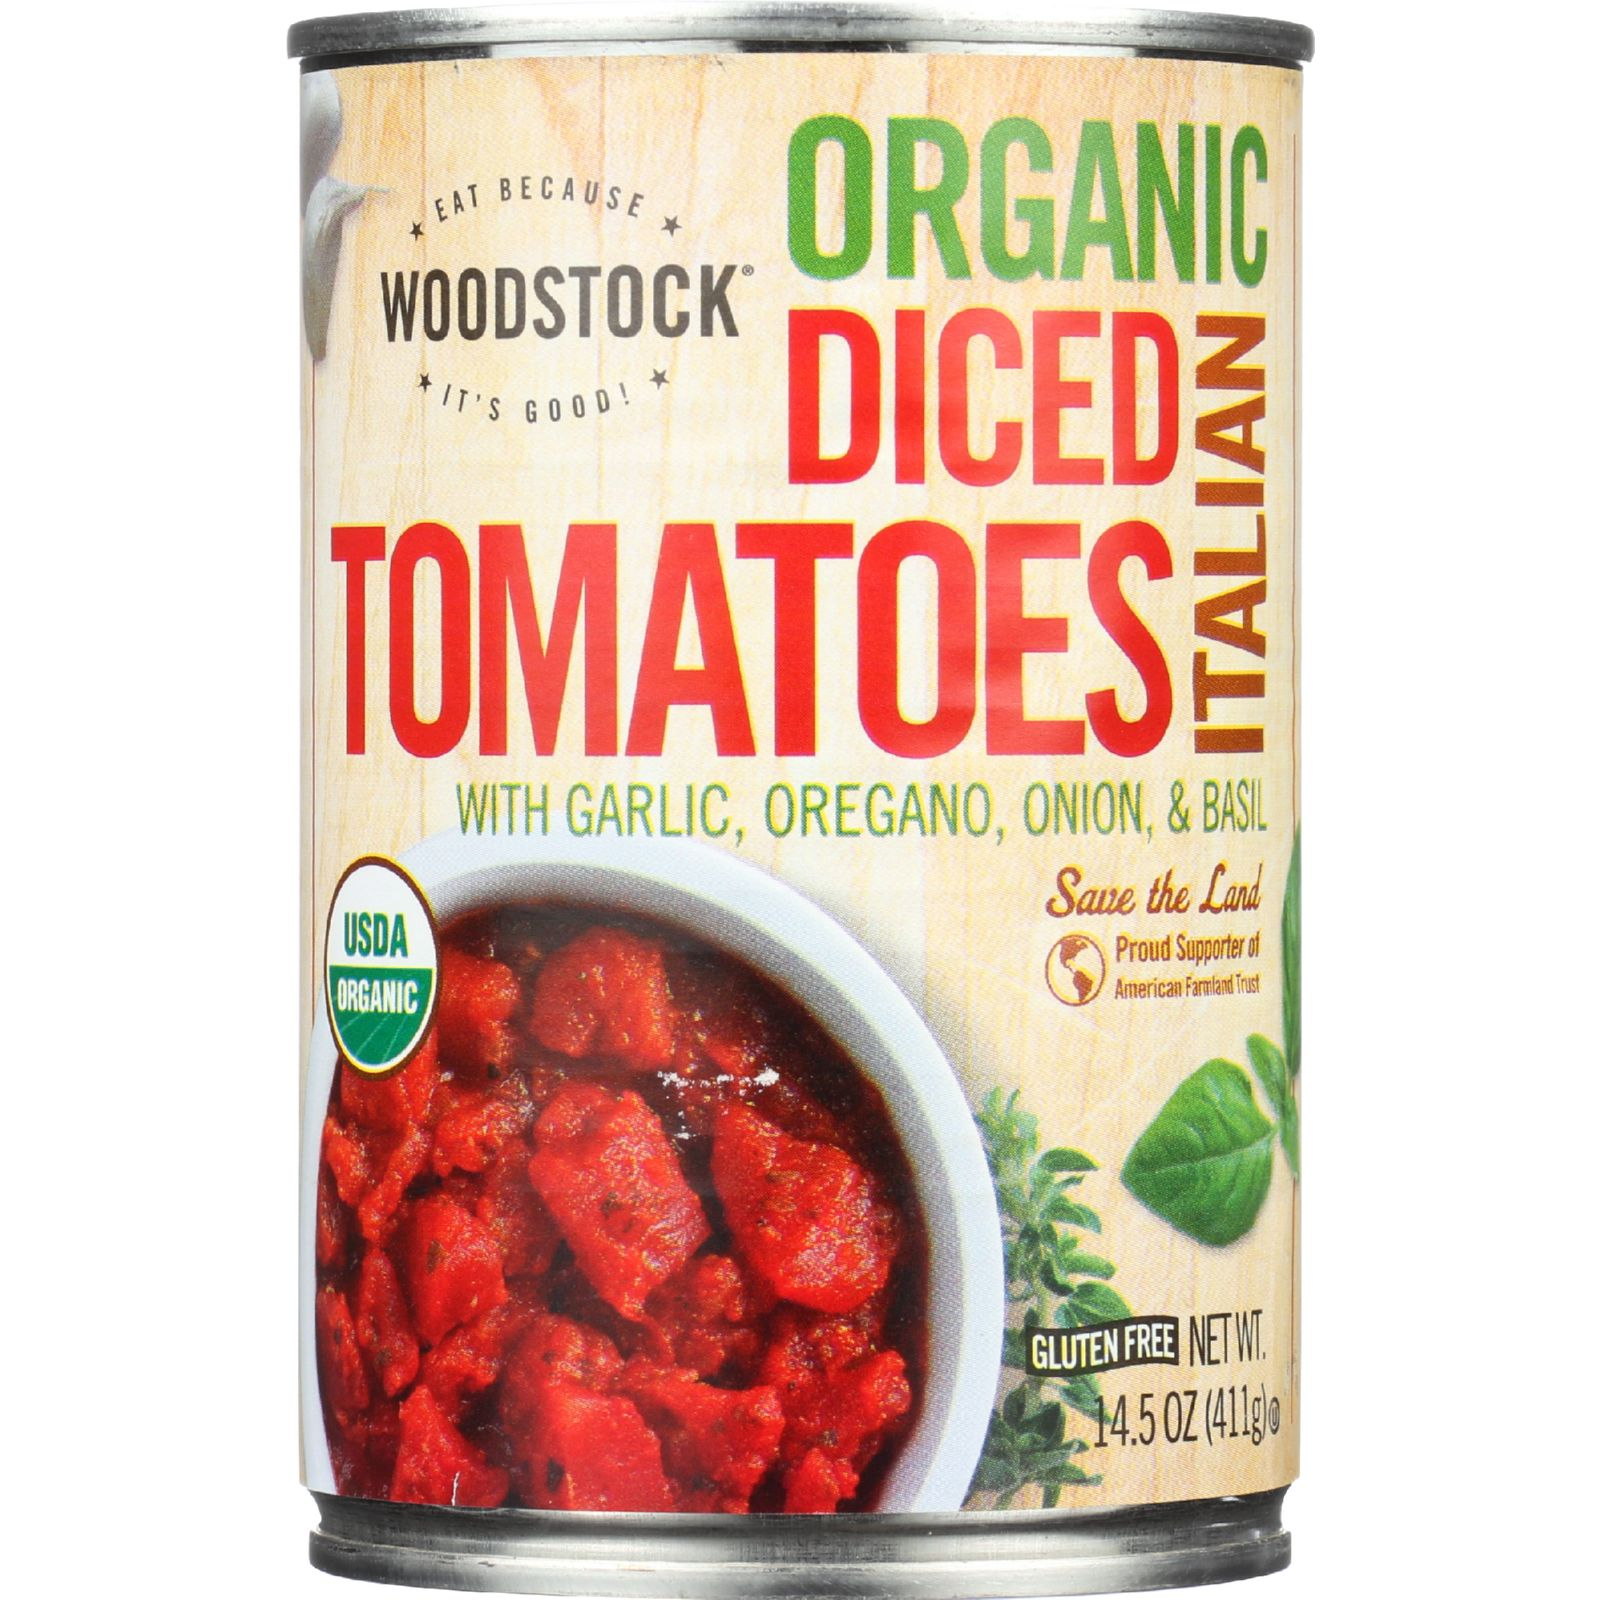 Woodstock Tomatoes - Organic - Diced - Italian Herbs - 14.5 oz - case of 12